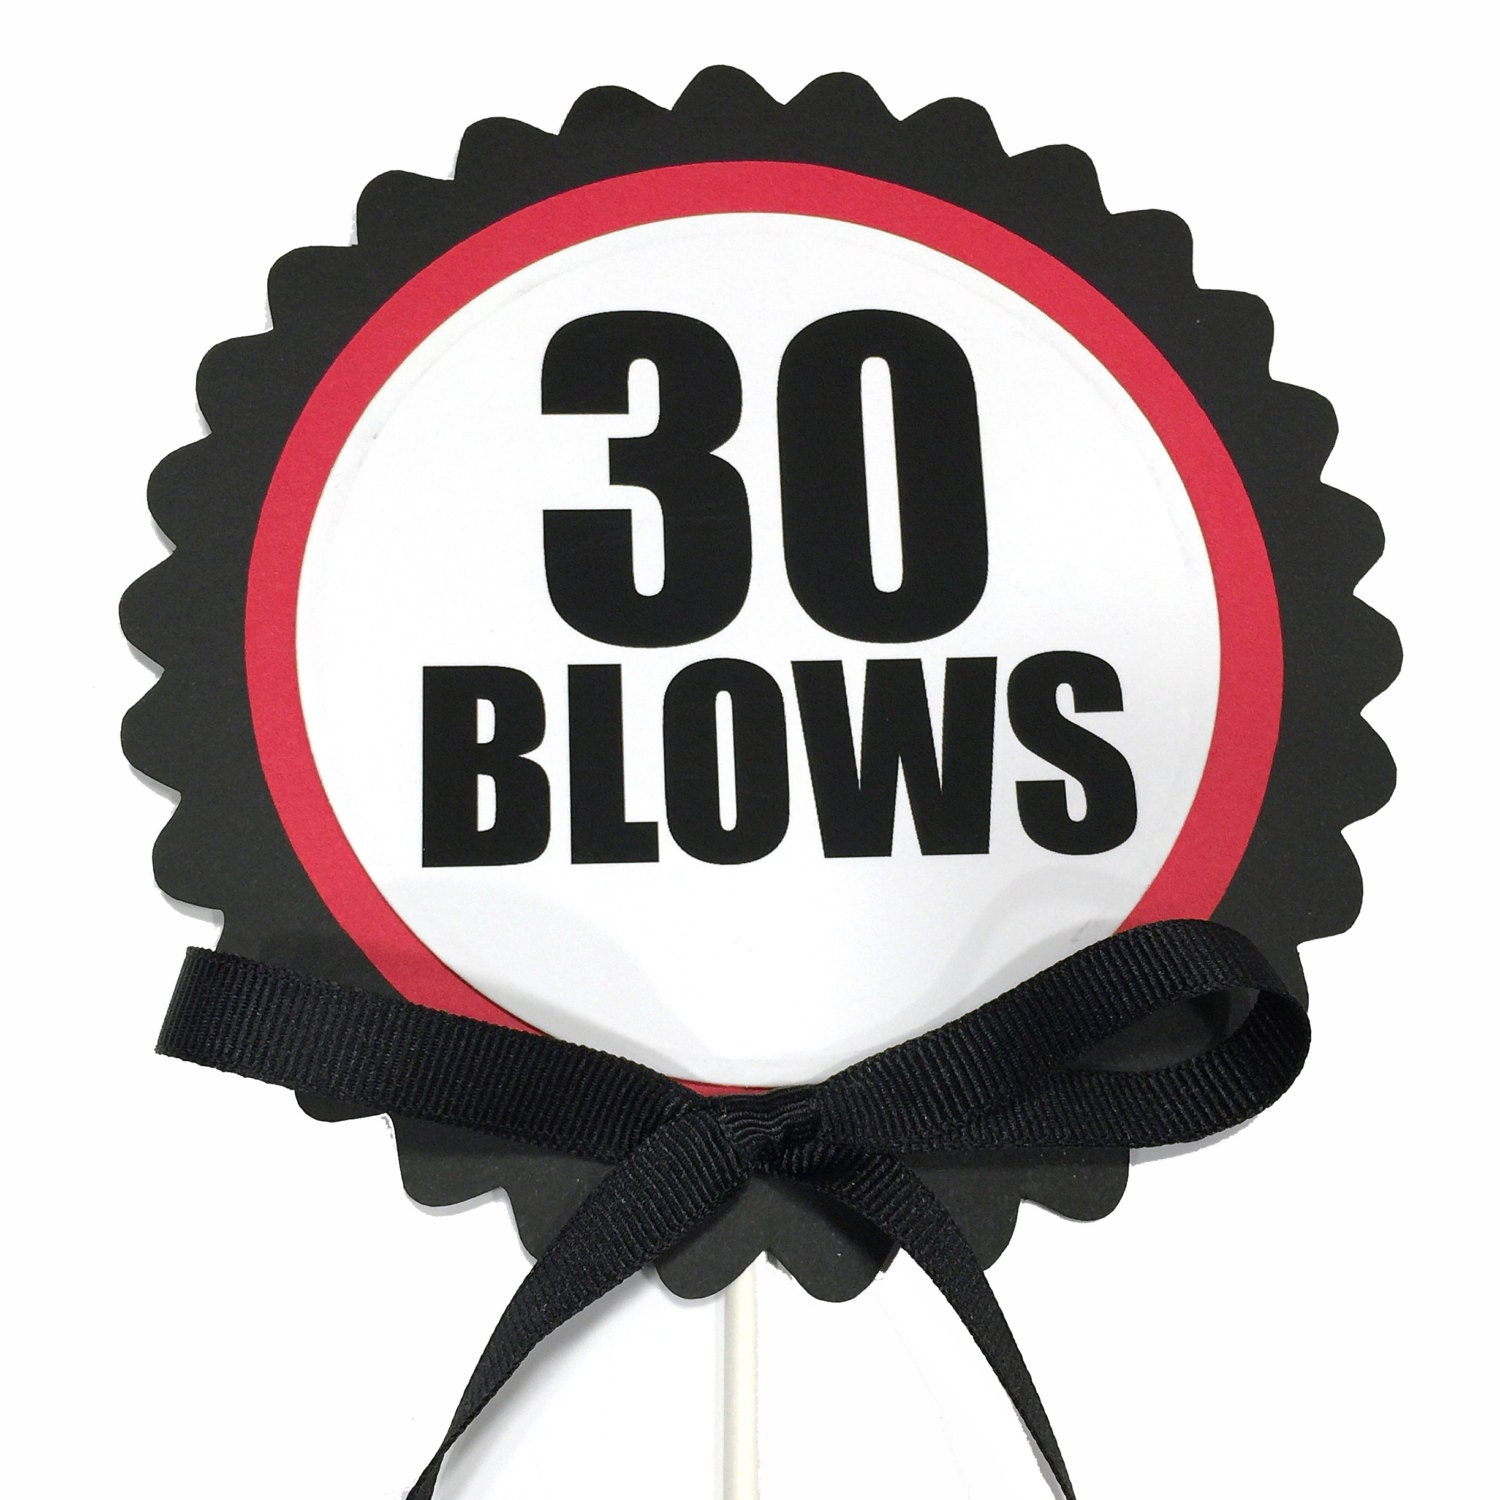 30 Blows 30th Birthday Cake Topper Black Red And White